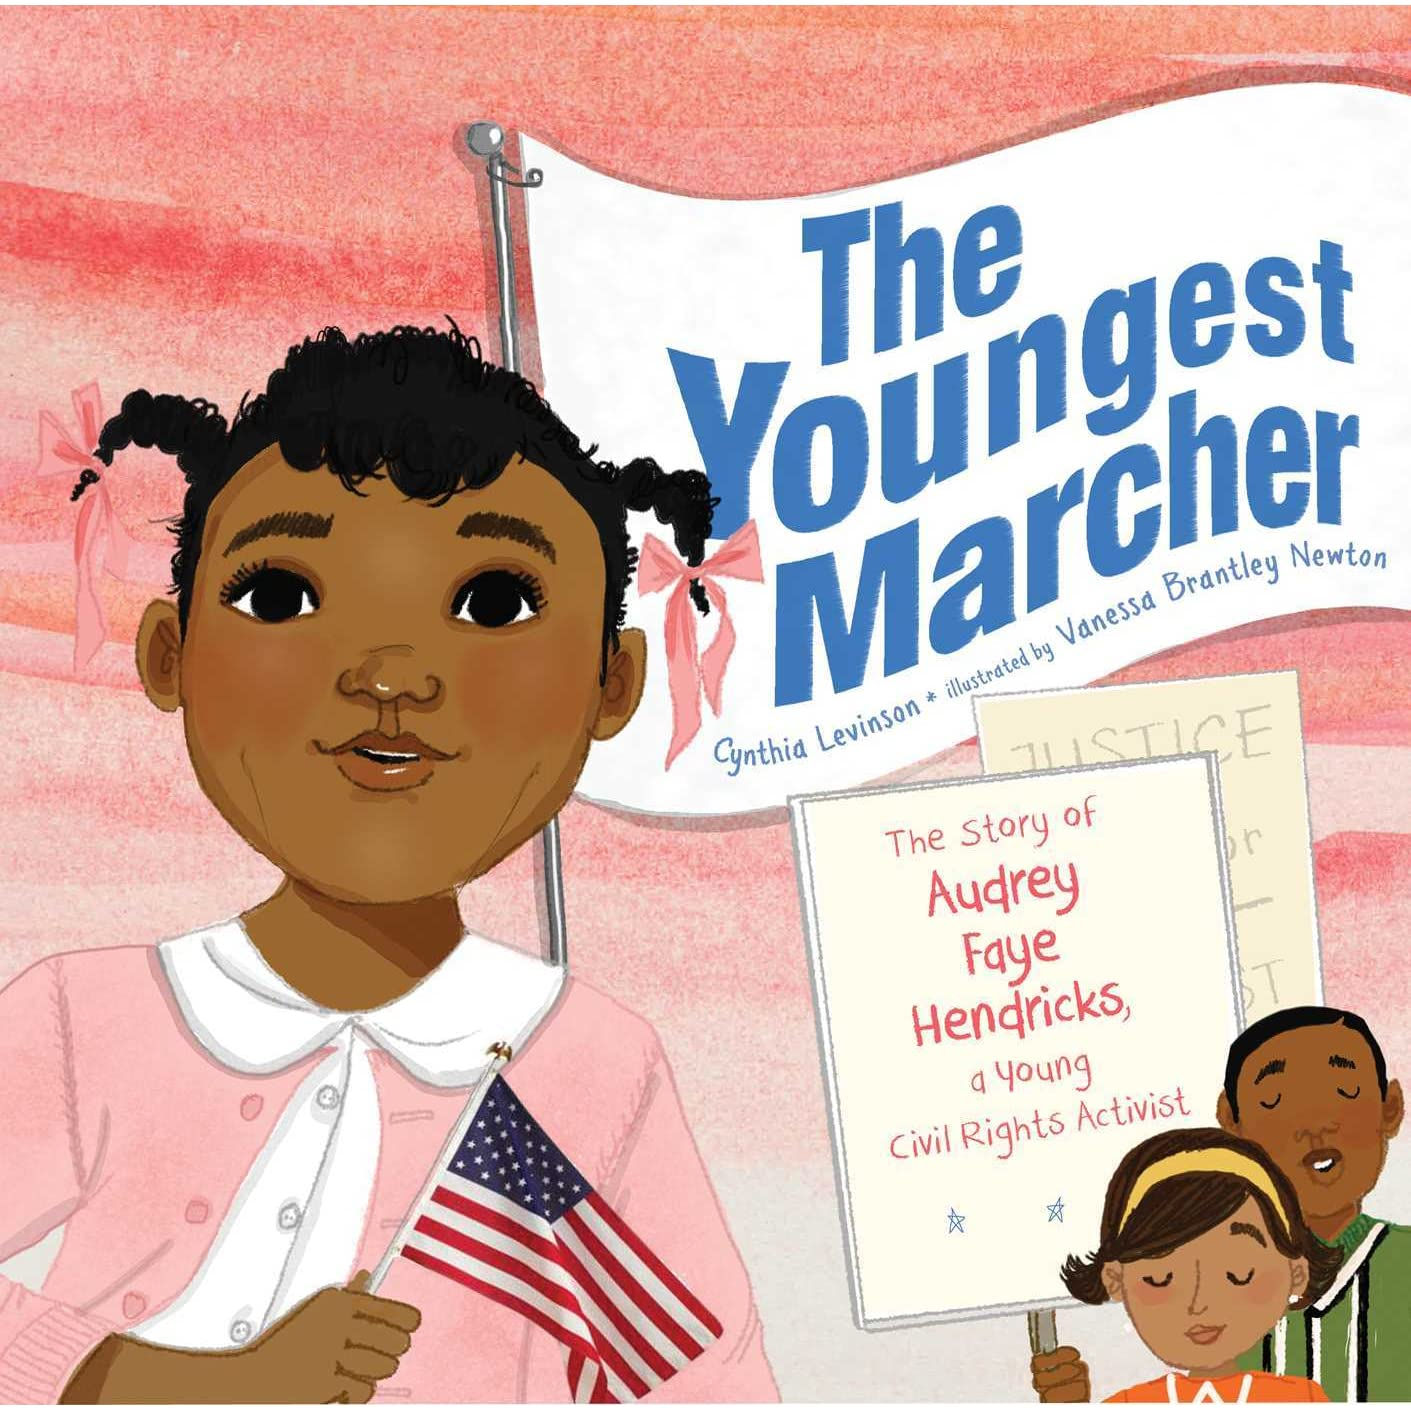 Uncategorized Martin Luther King Jr Cartoon Movie martin luther king jr shelf the autobiography of youngest marcher story audrey faye hendricks a young civil rights activist